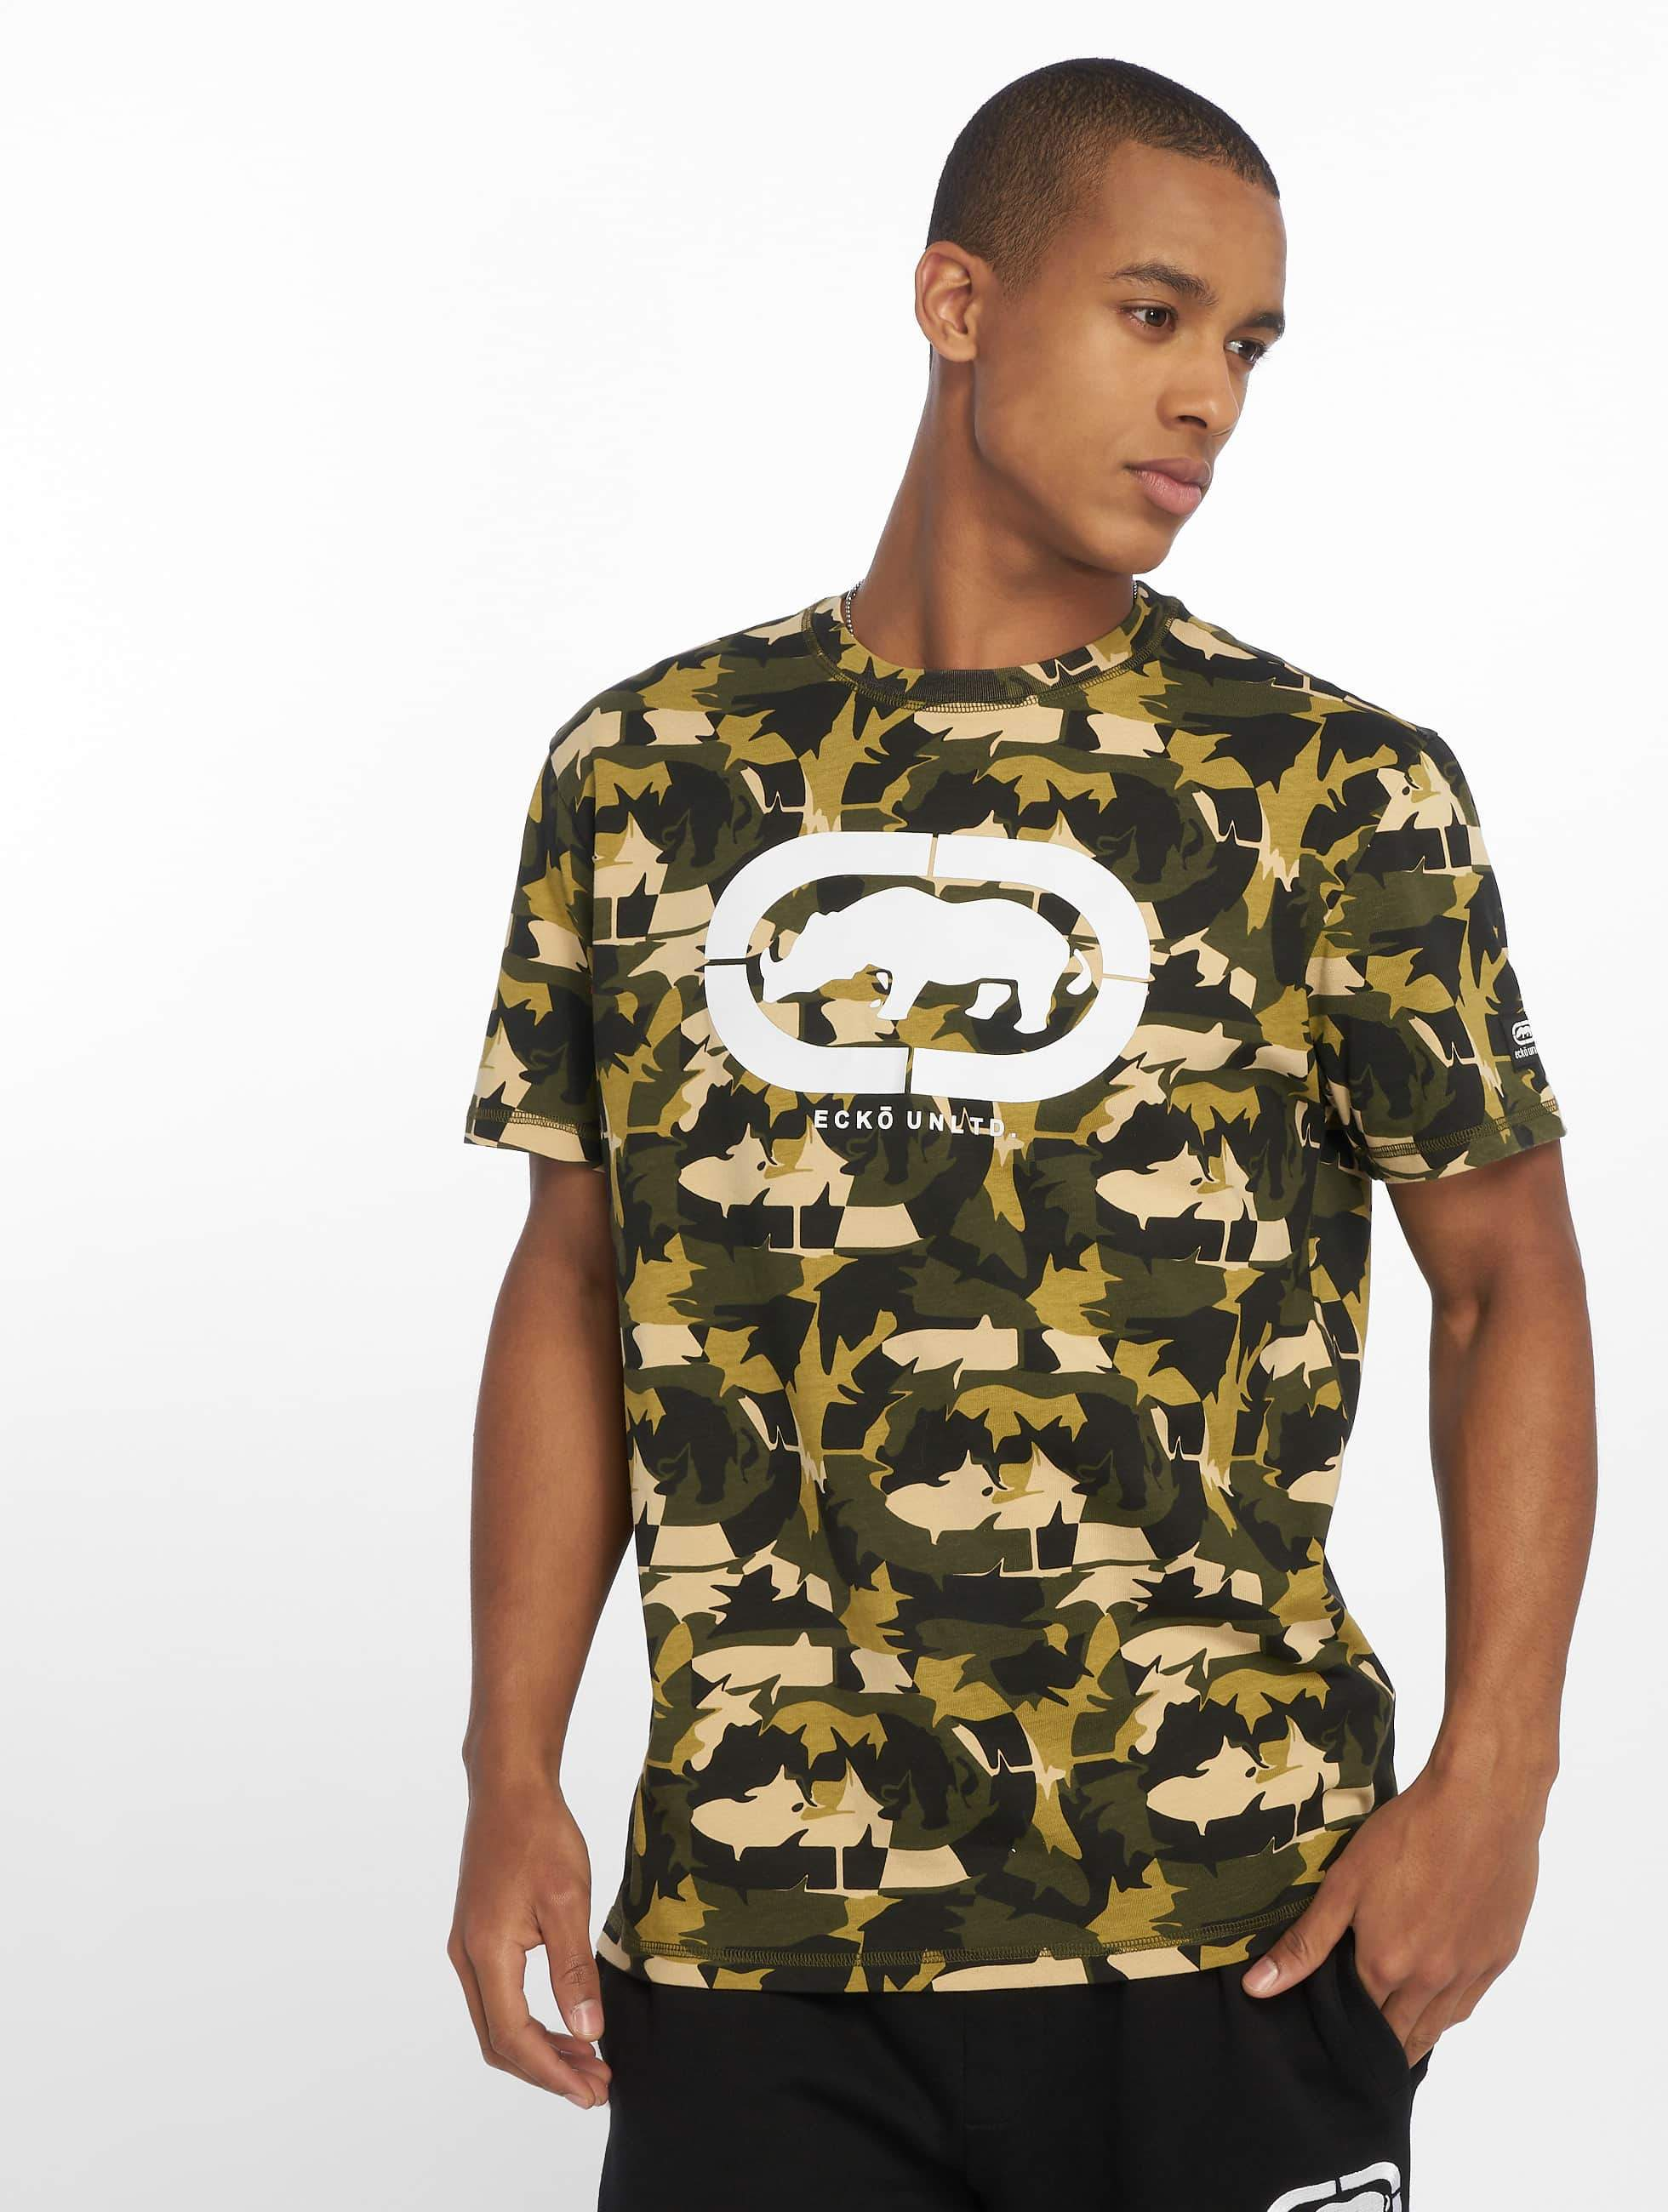 Ecko Unltd. / T-Shirt Camou and Rhino in camouflage XL